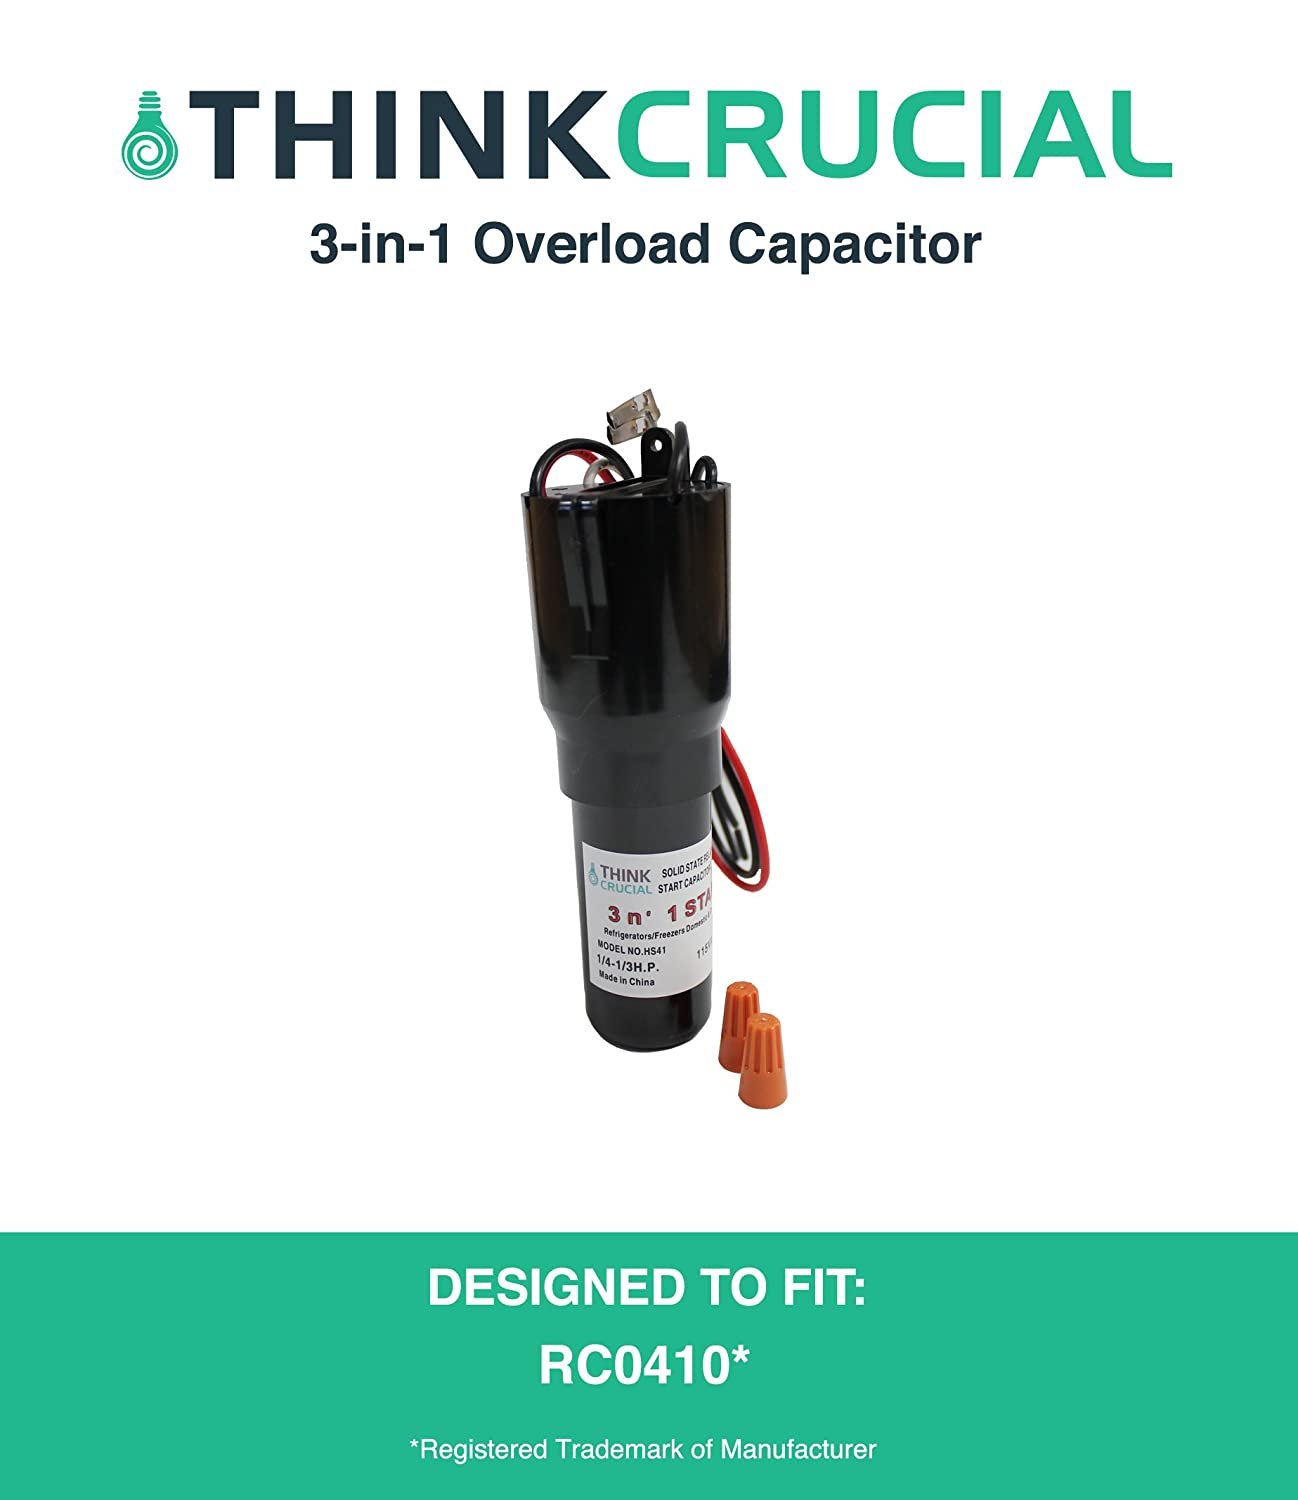 Amazon.com: Durable HS41 RCO410 3-in-1 Start Relay, Capacitor & Overload  Device Start Kit for Refrigerators & Freezers, by Think Crucial: Automotive